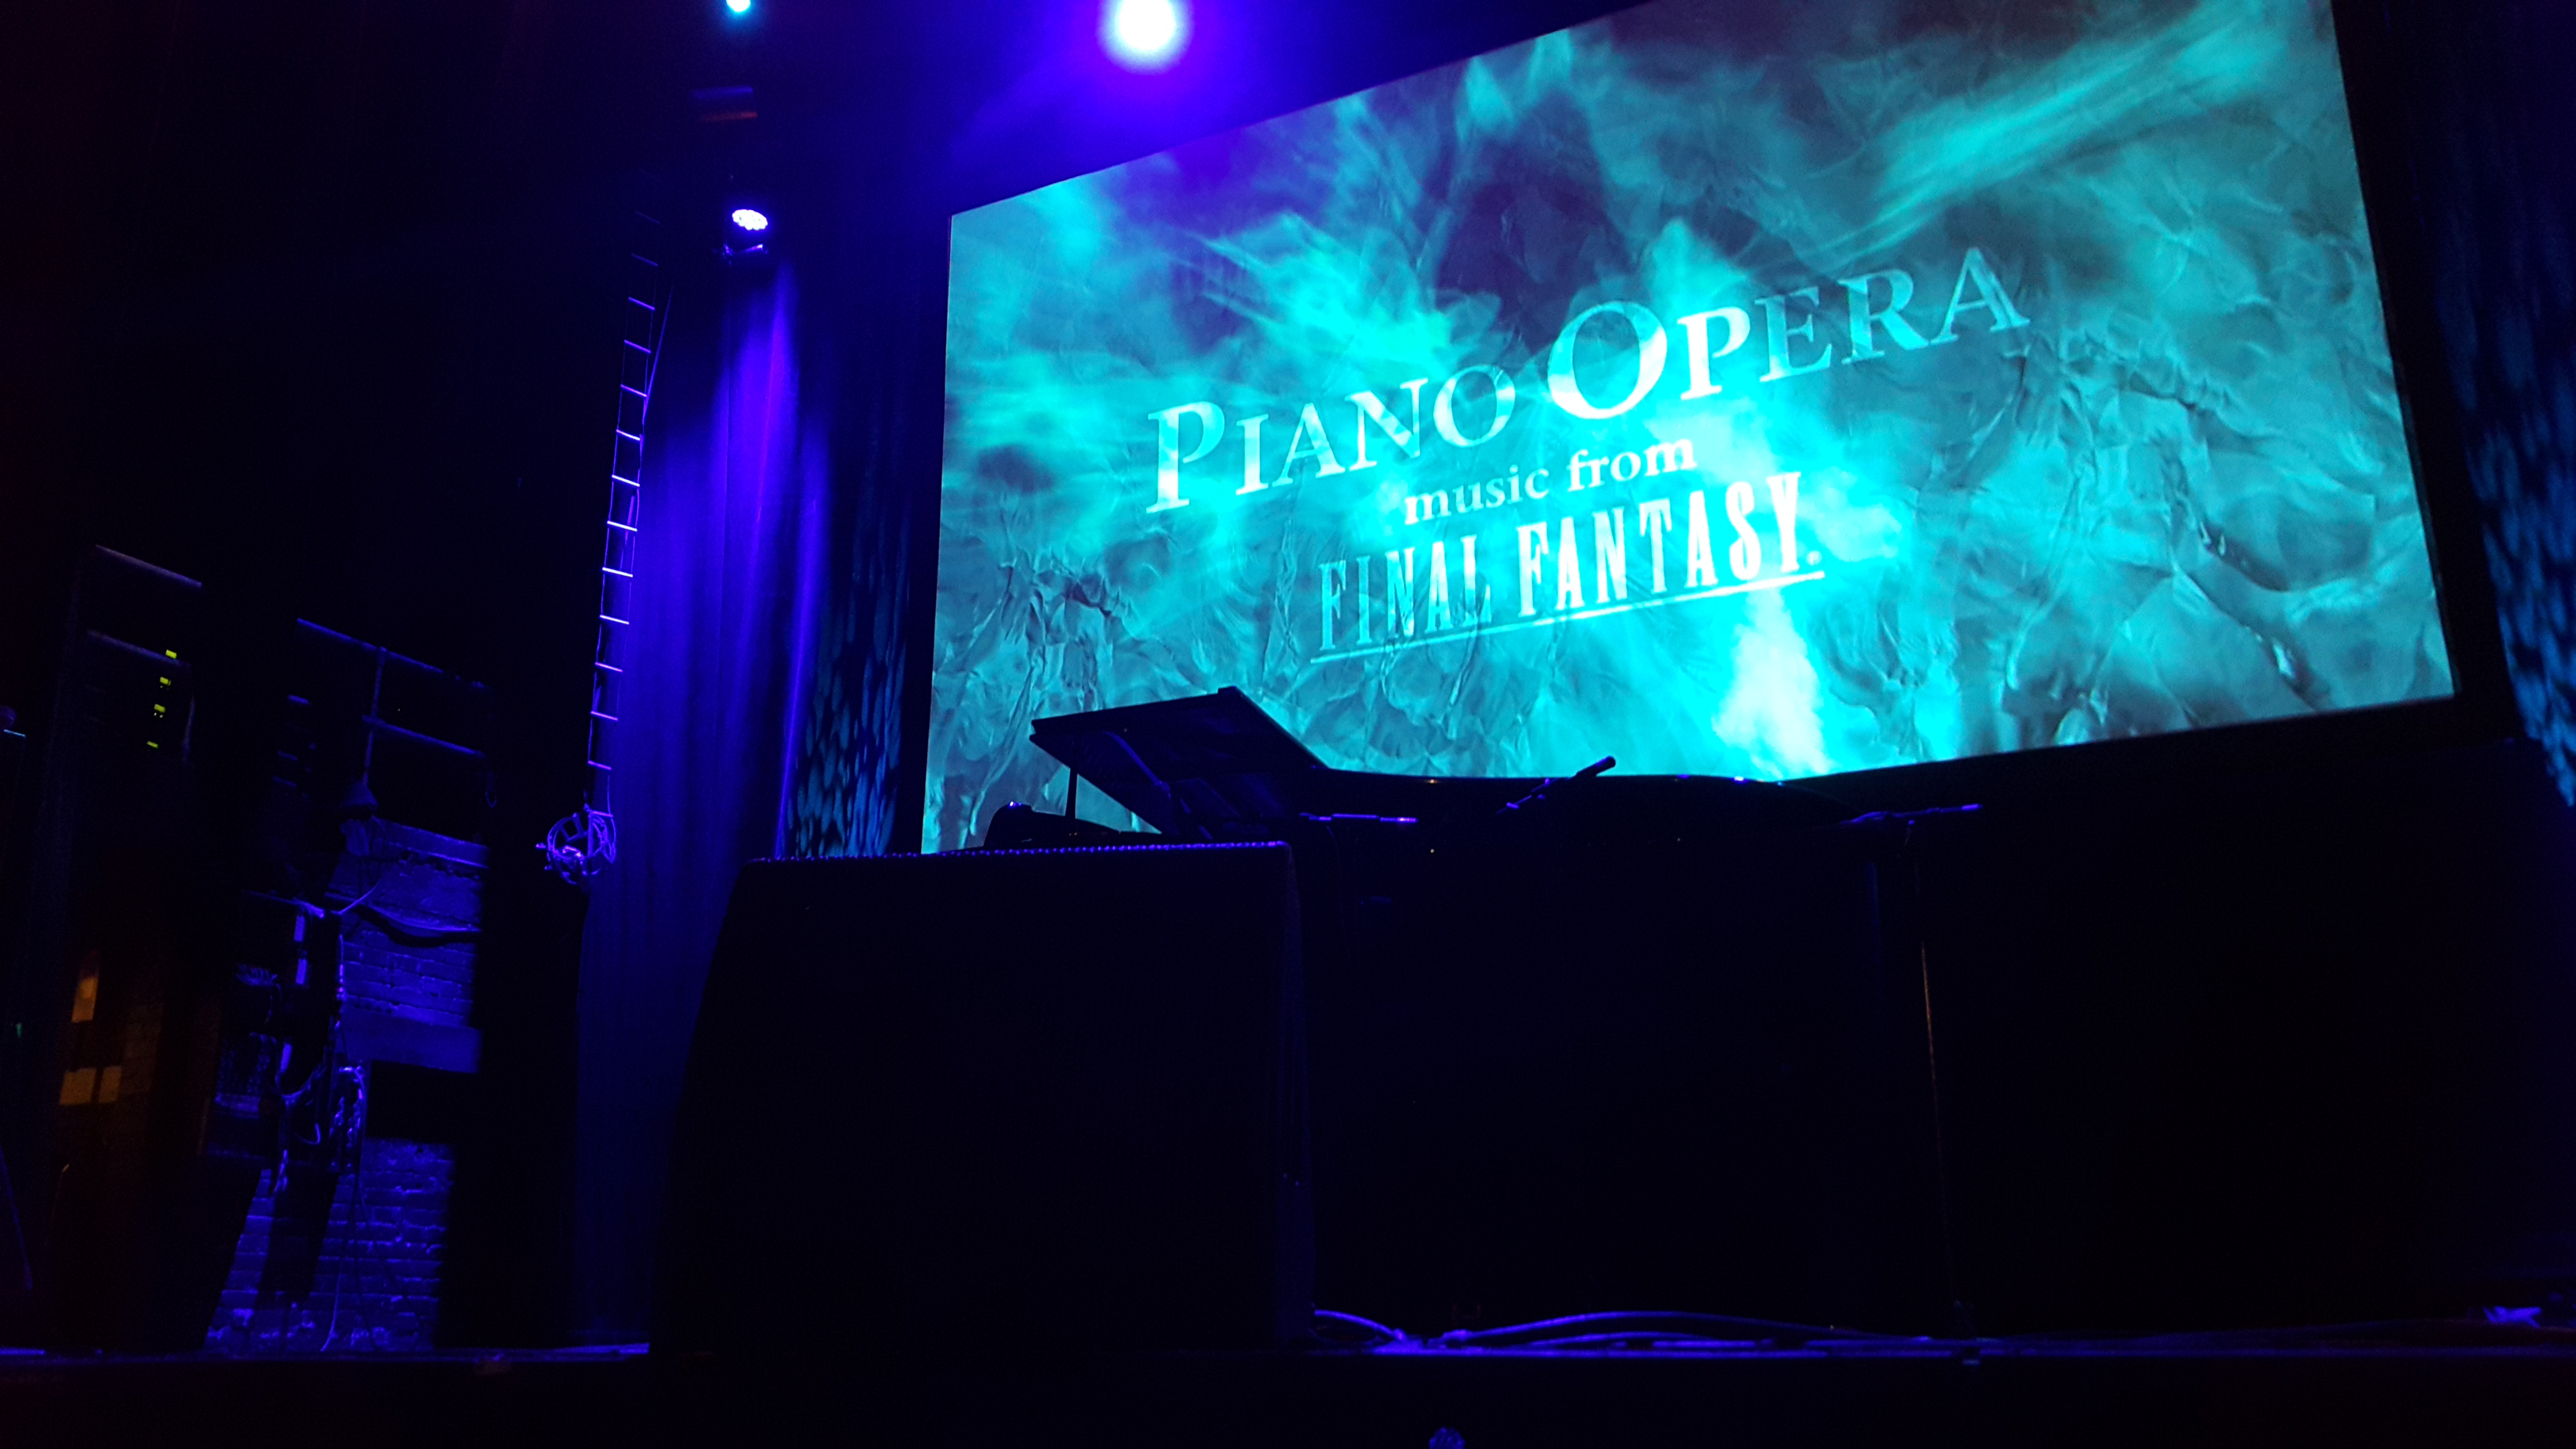 Piano Opera: Music From Final Fantasy